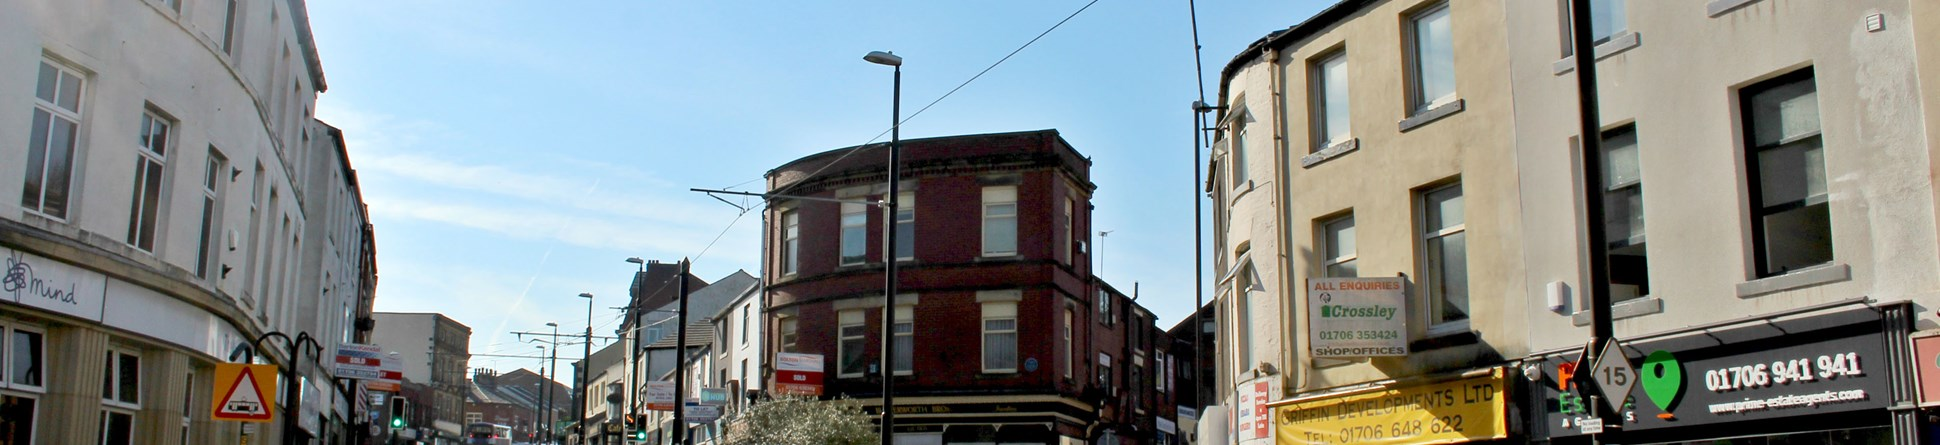 General view looking up Drake Street, Rochdale on a sunny day in 2018